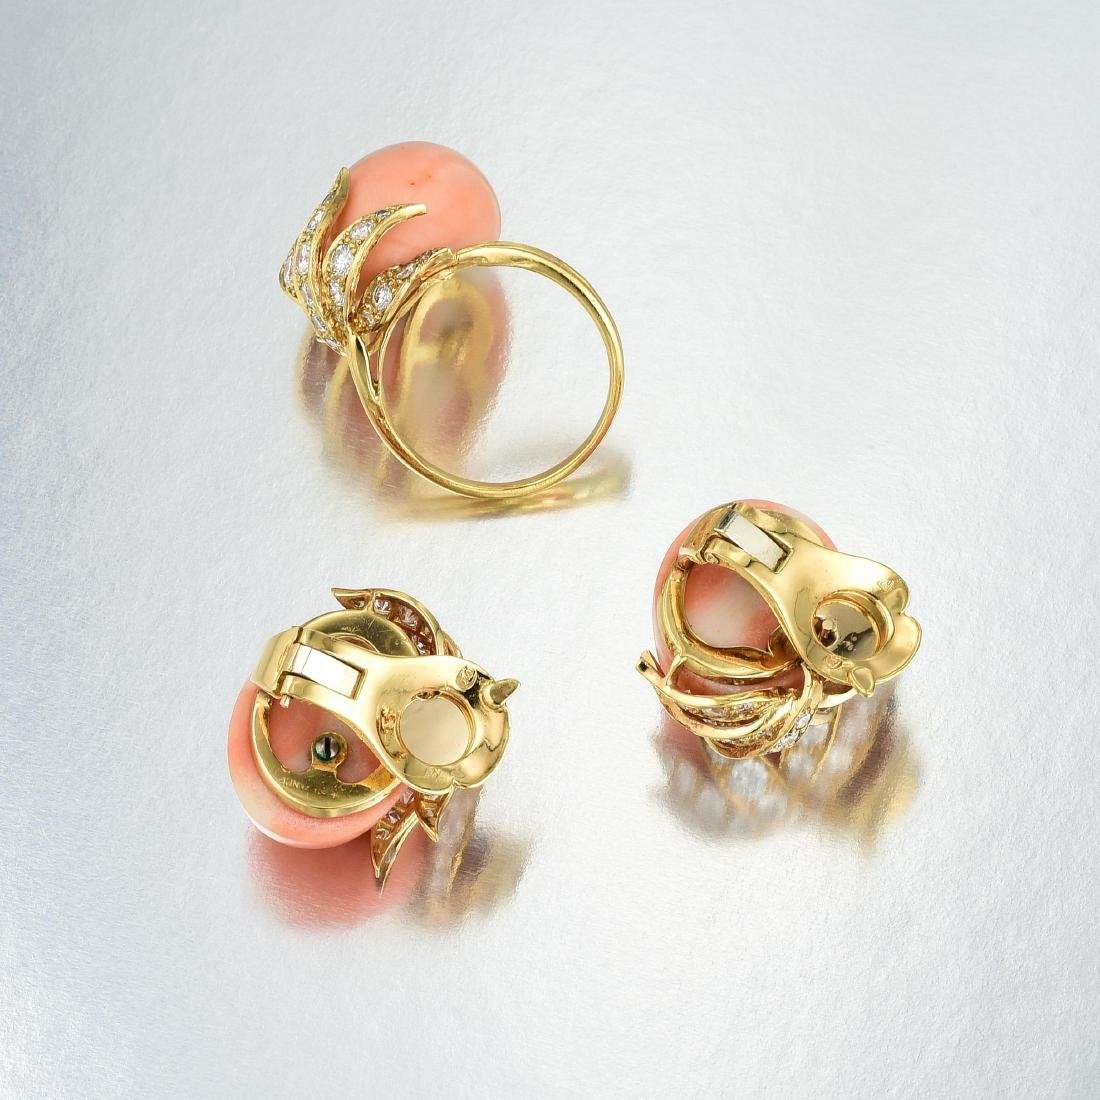 A Coral and Diamond Ring and Earrings Set, French - 4